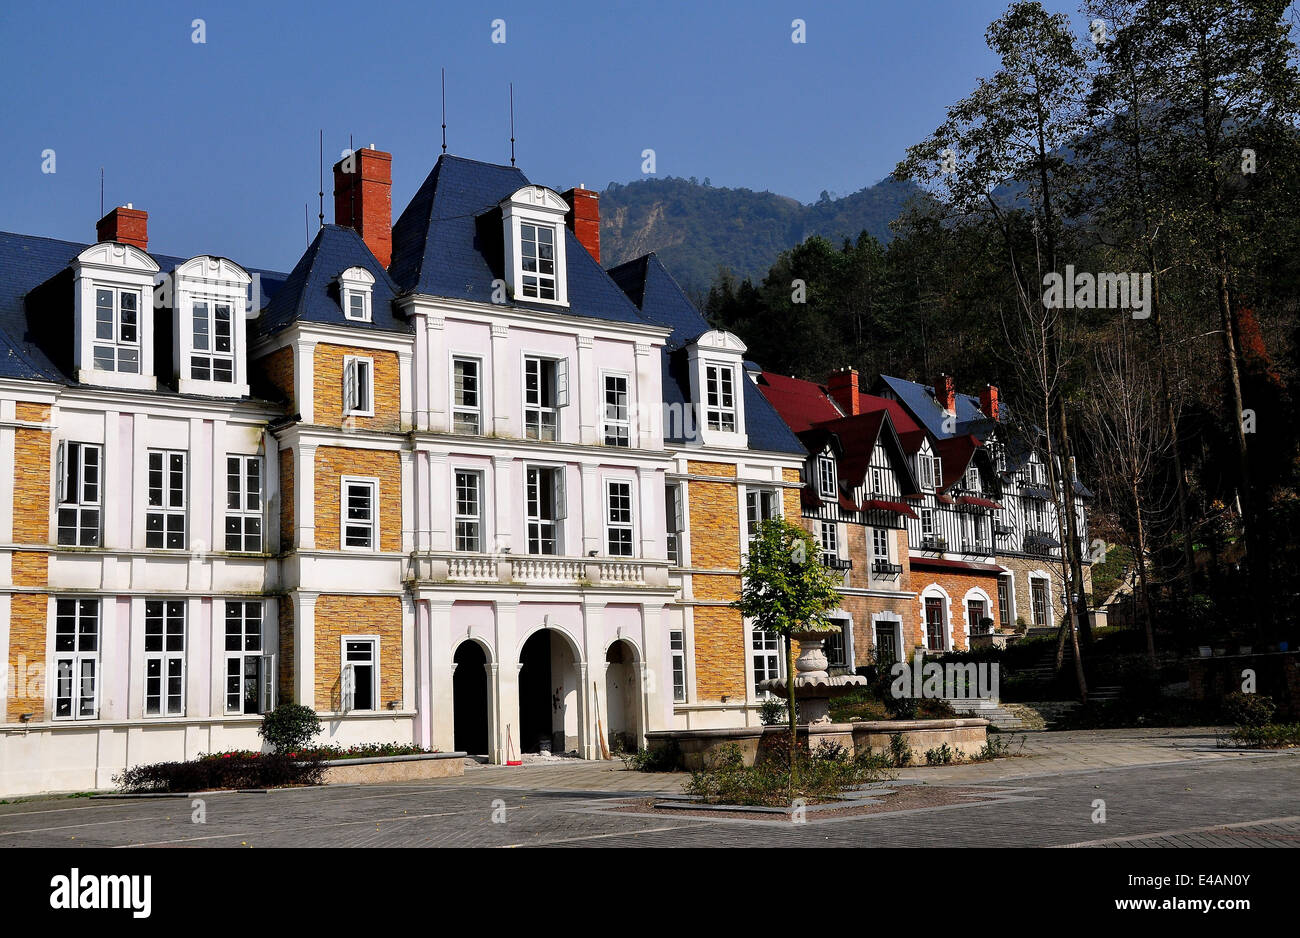 BAI LU / SICHUAN, CHINA: Normandie style faux chateau and half-timbered manor houses in the recreated Sino-French Stock Photo